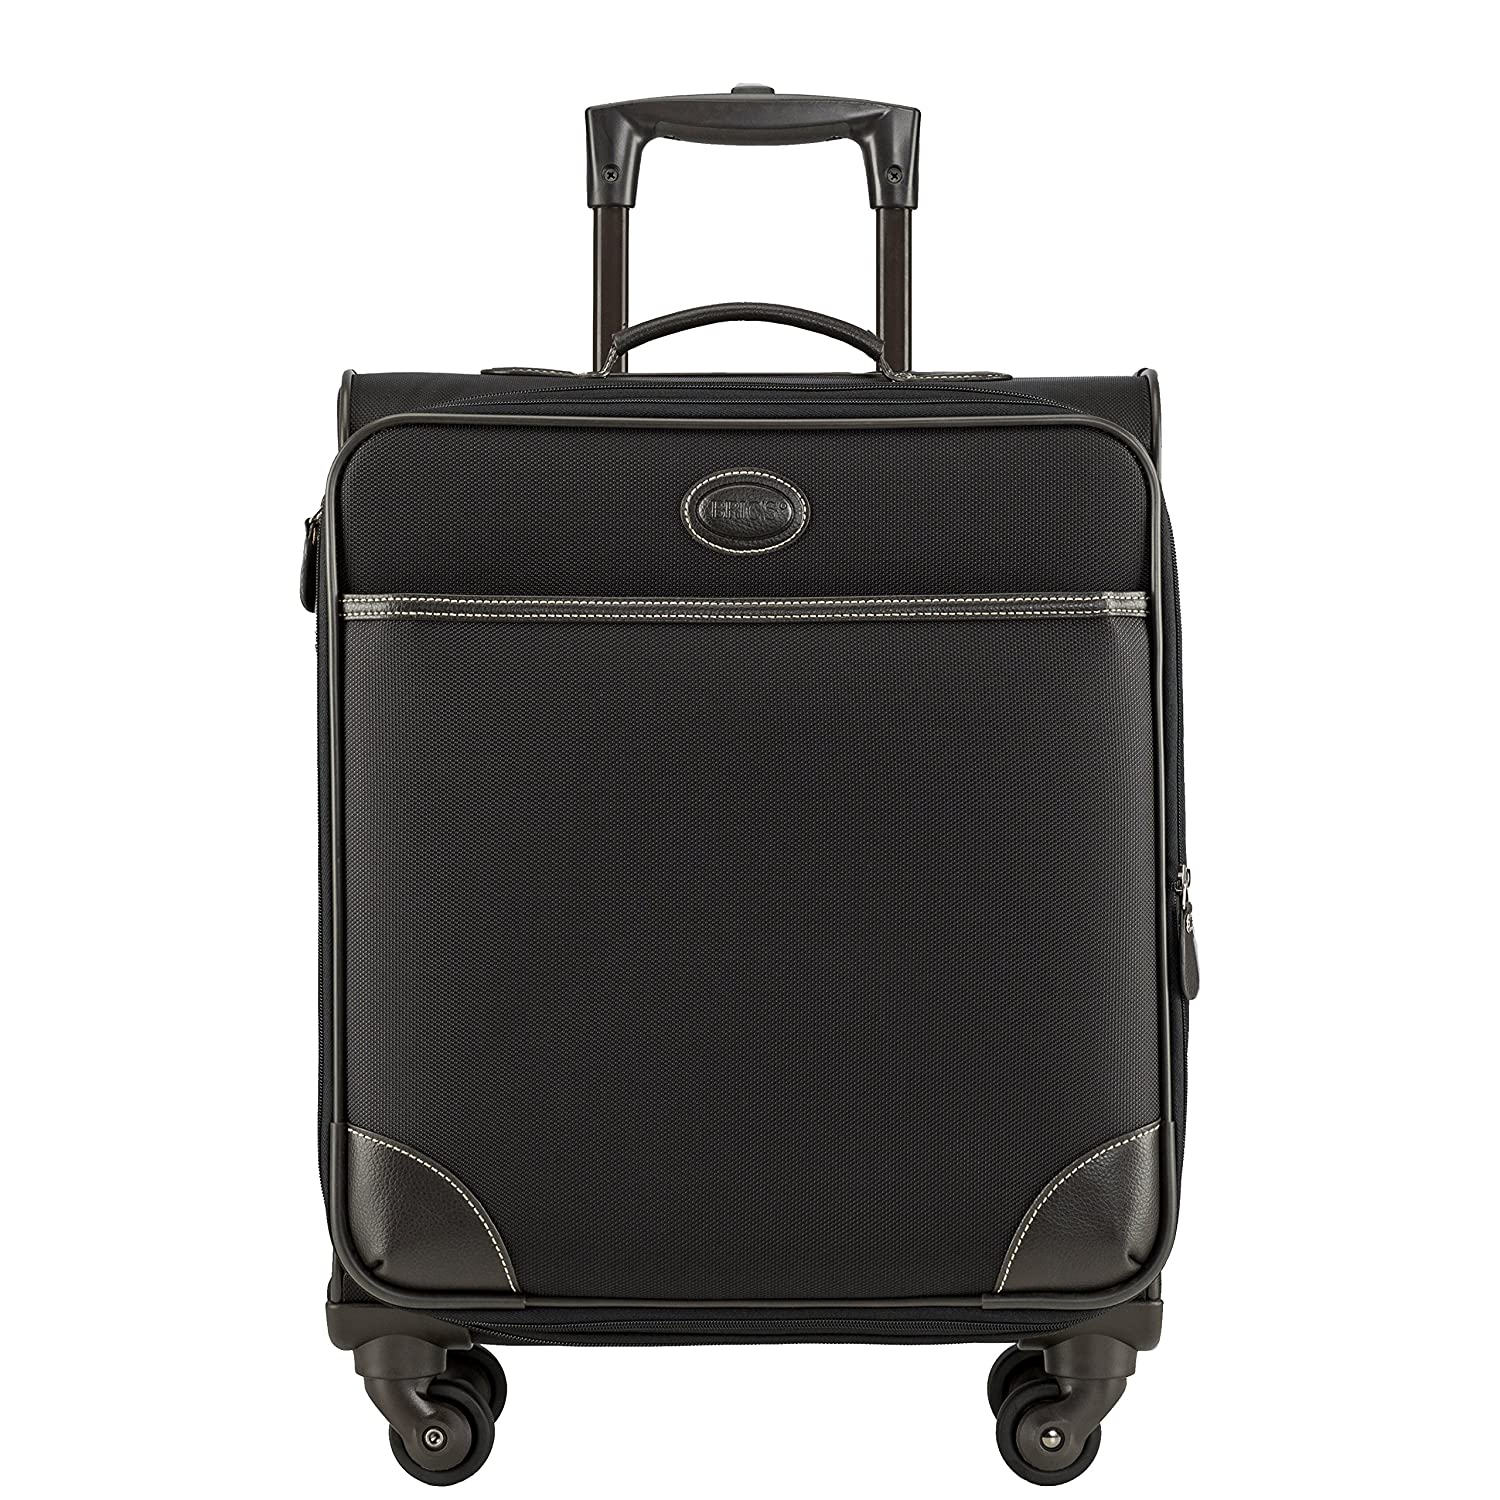 60%OFF Bric's Pronto 21 Inch Expandable Carry on Spinner, Black